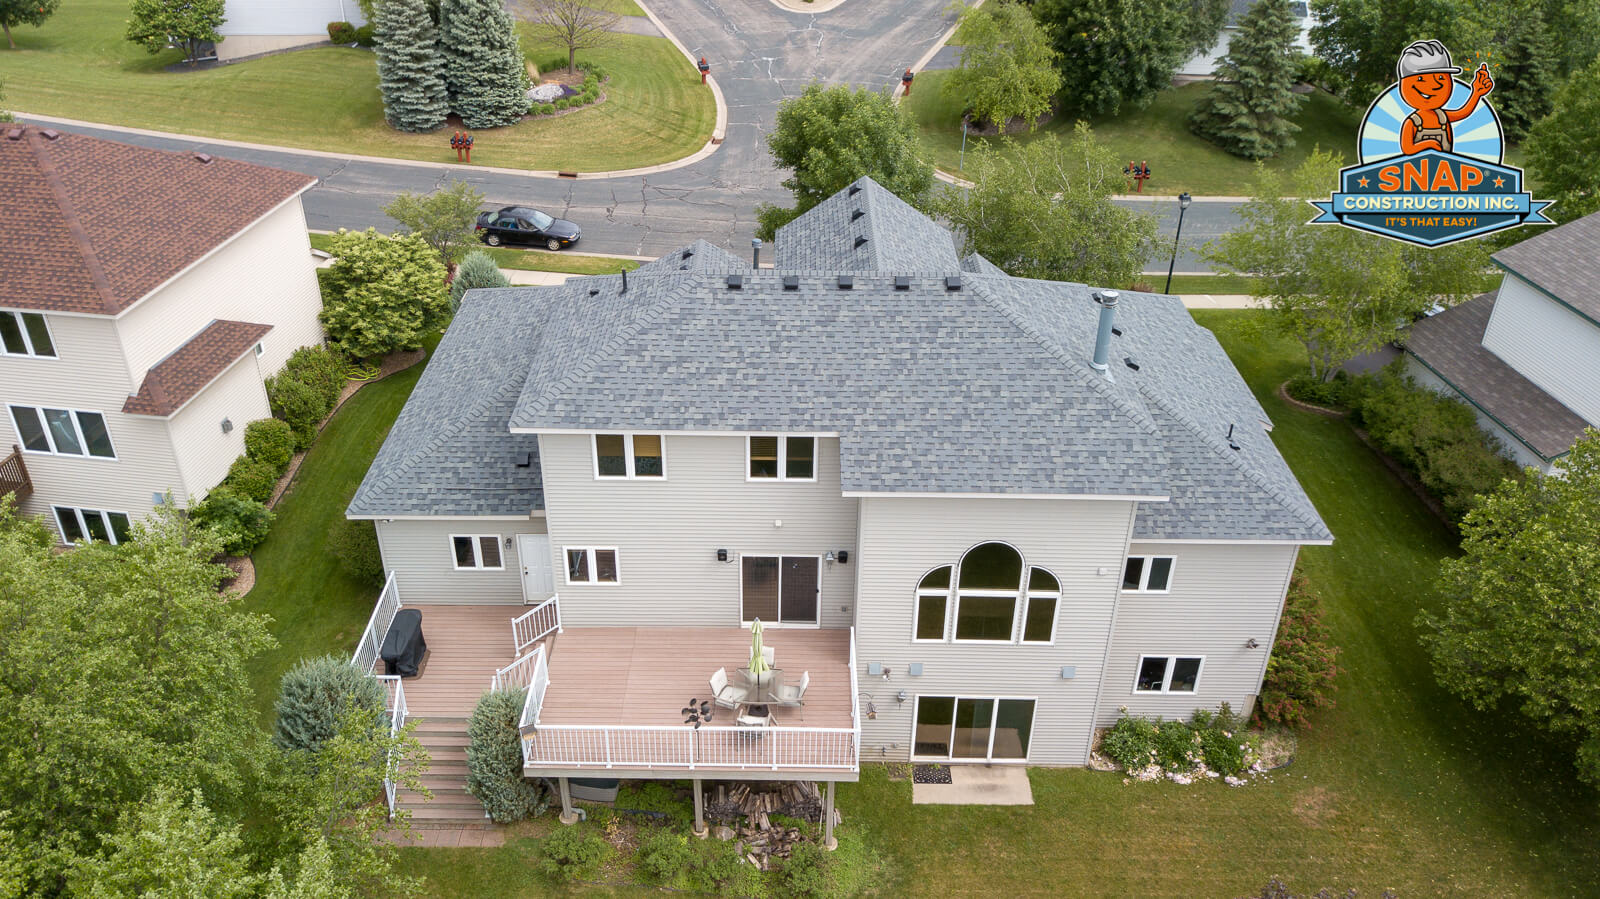 DEDICATED ROOFING COMPANY MINNEAPOLIS MN